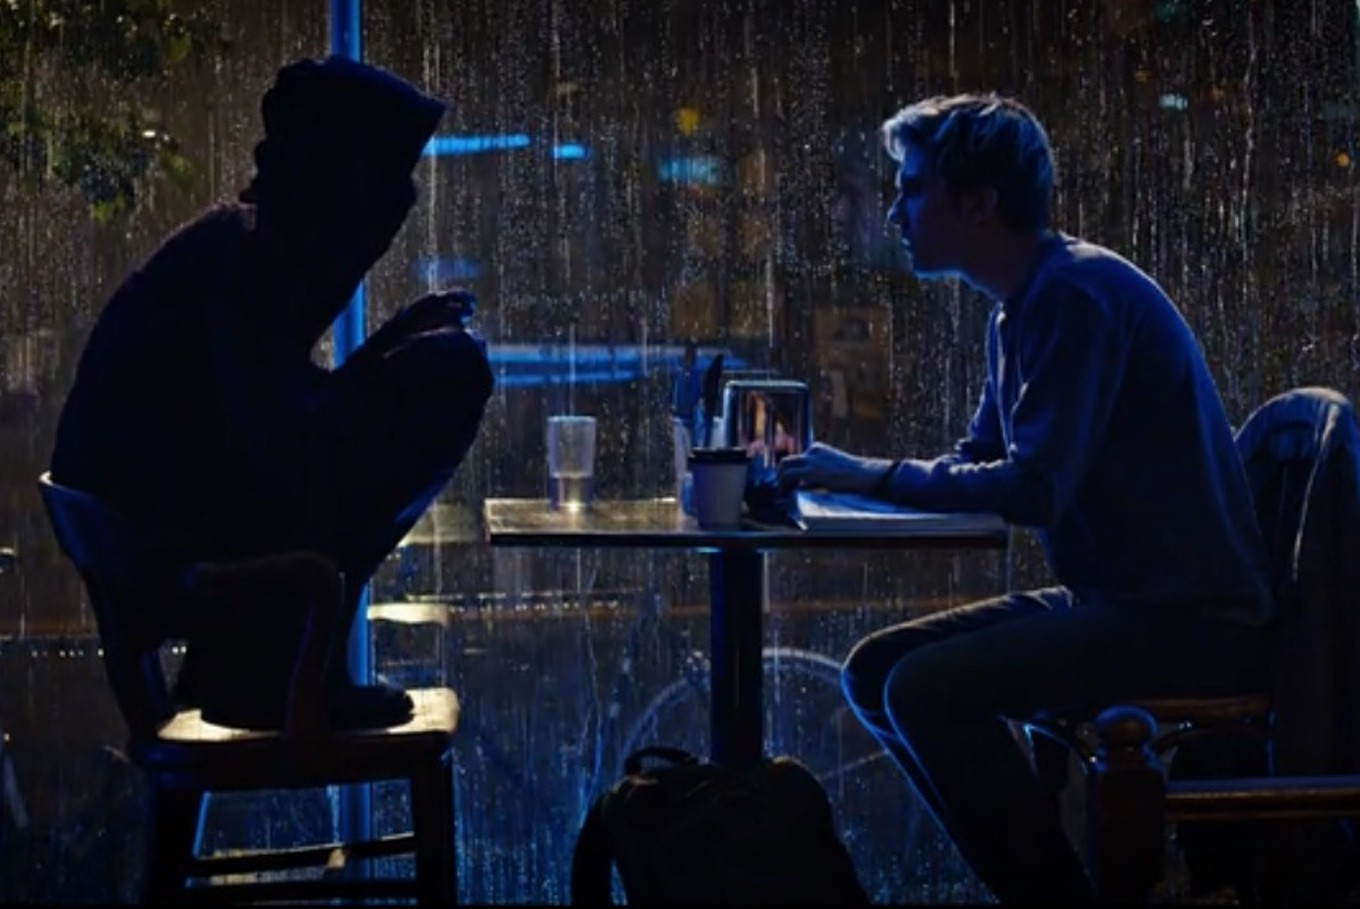 'Death Note' is inspired by-but meant to be different from-the original